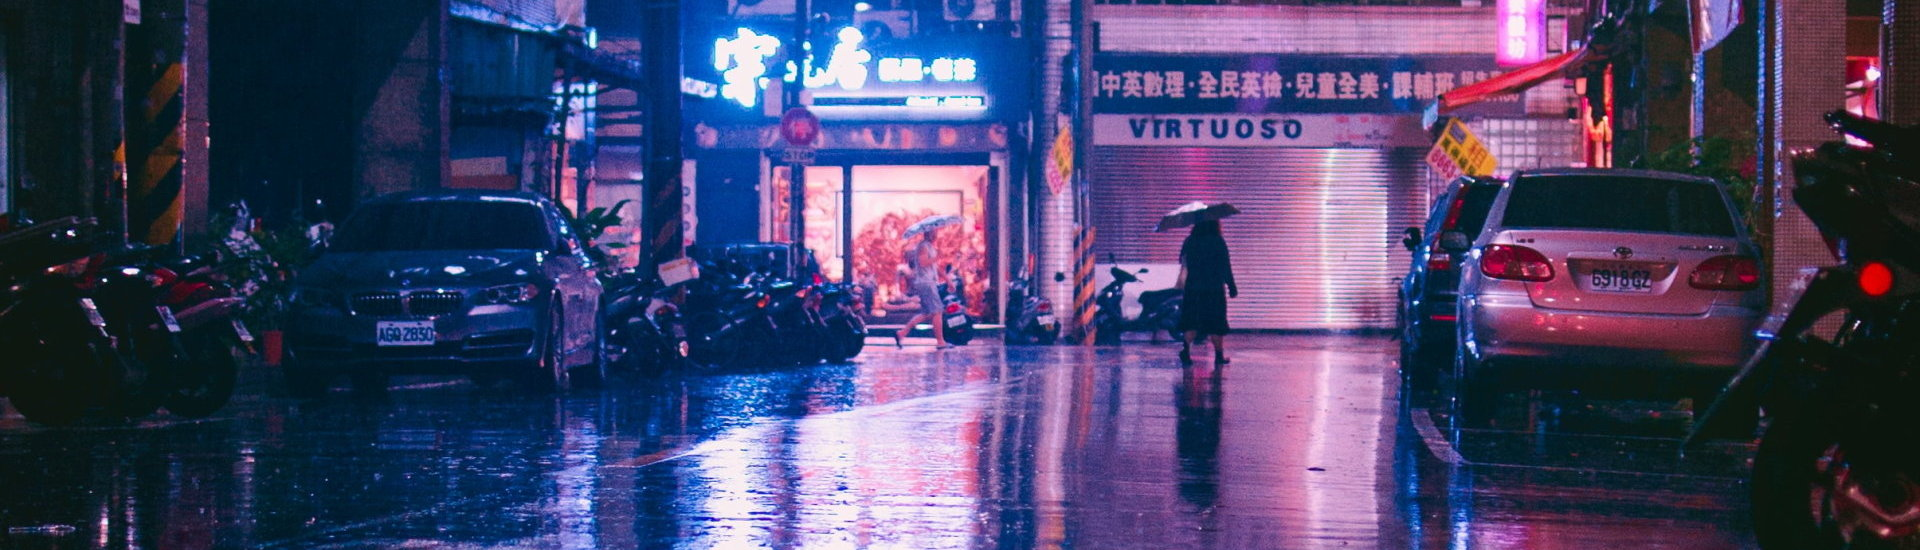 Rainy in Taipei (Photo by Andrew Haimerl on Unsplash)